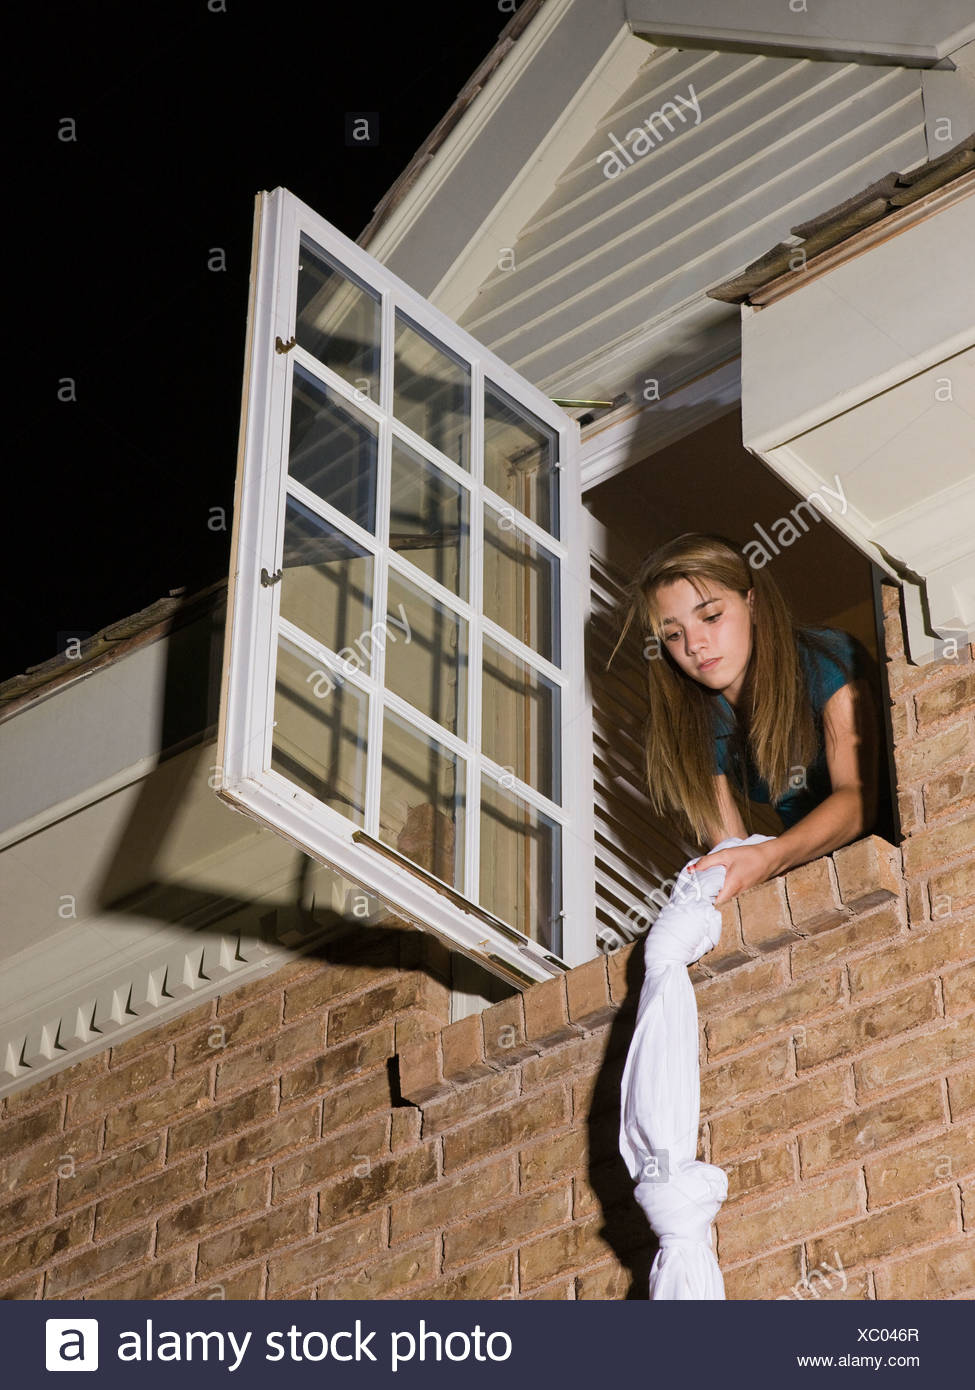 teenager climbing out of her bedroom window - Stock Image